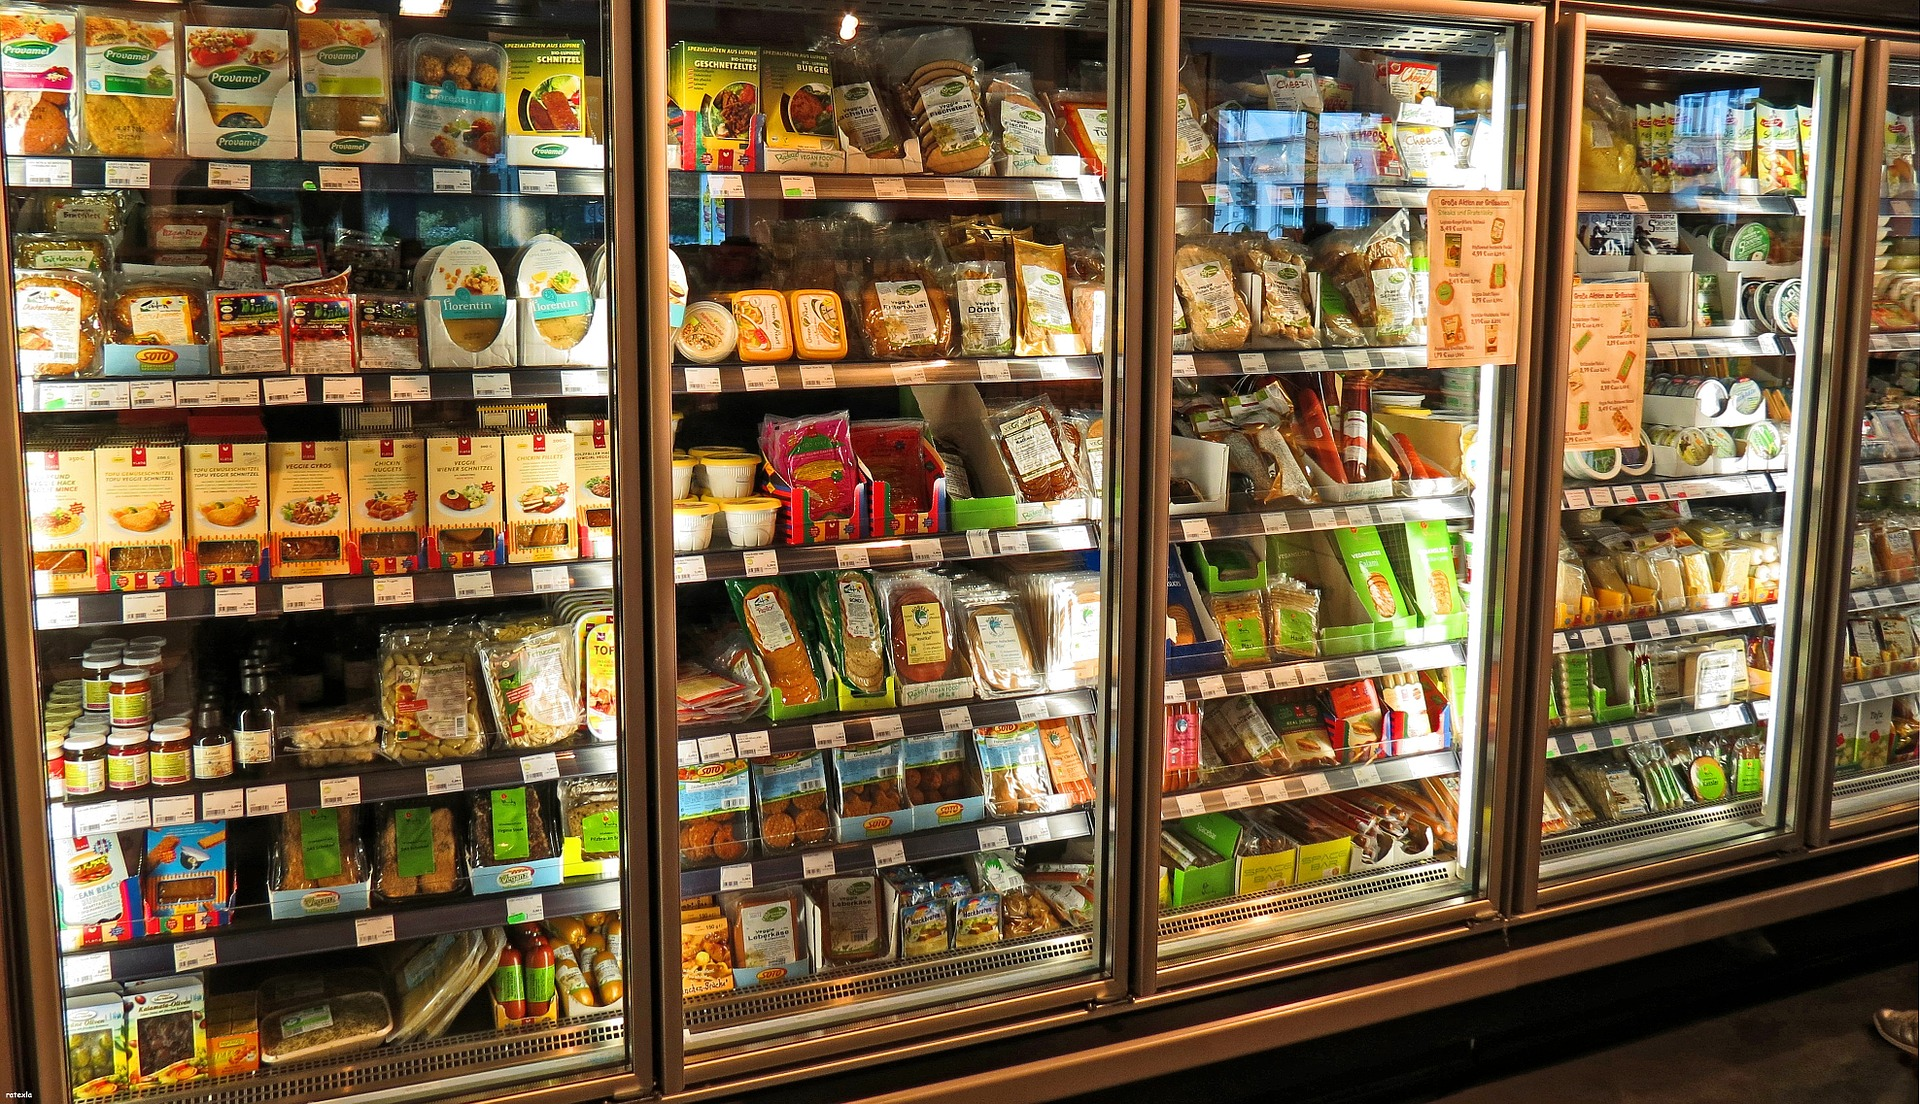 Time to stock the fridge. You head to the grocery store and reach for . . .